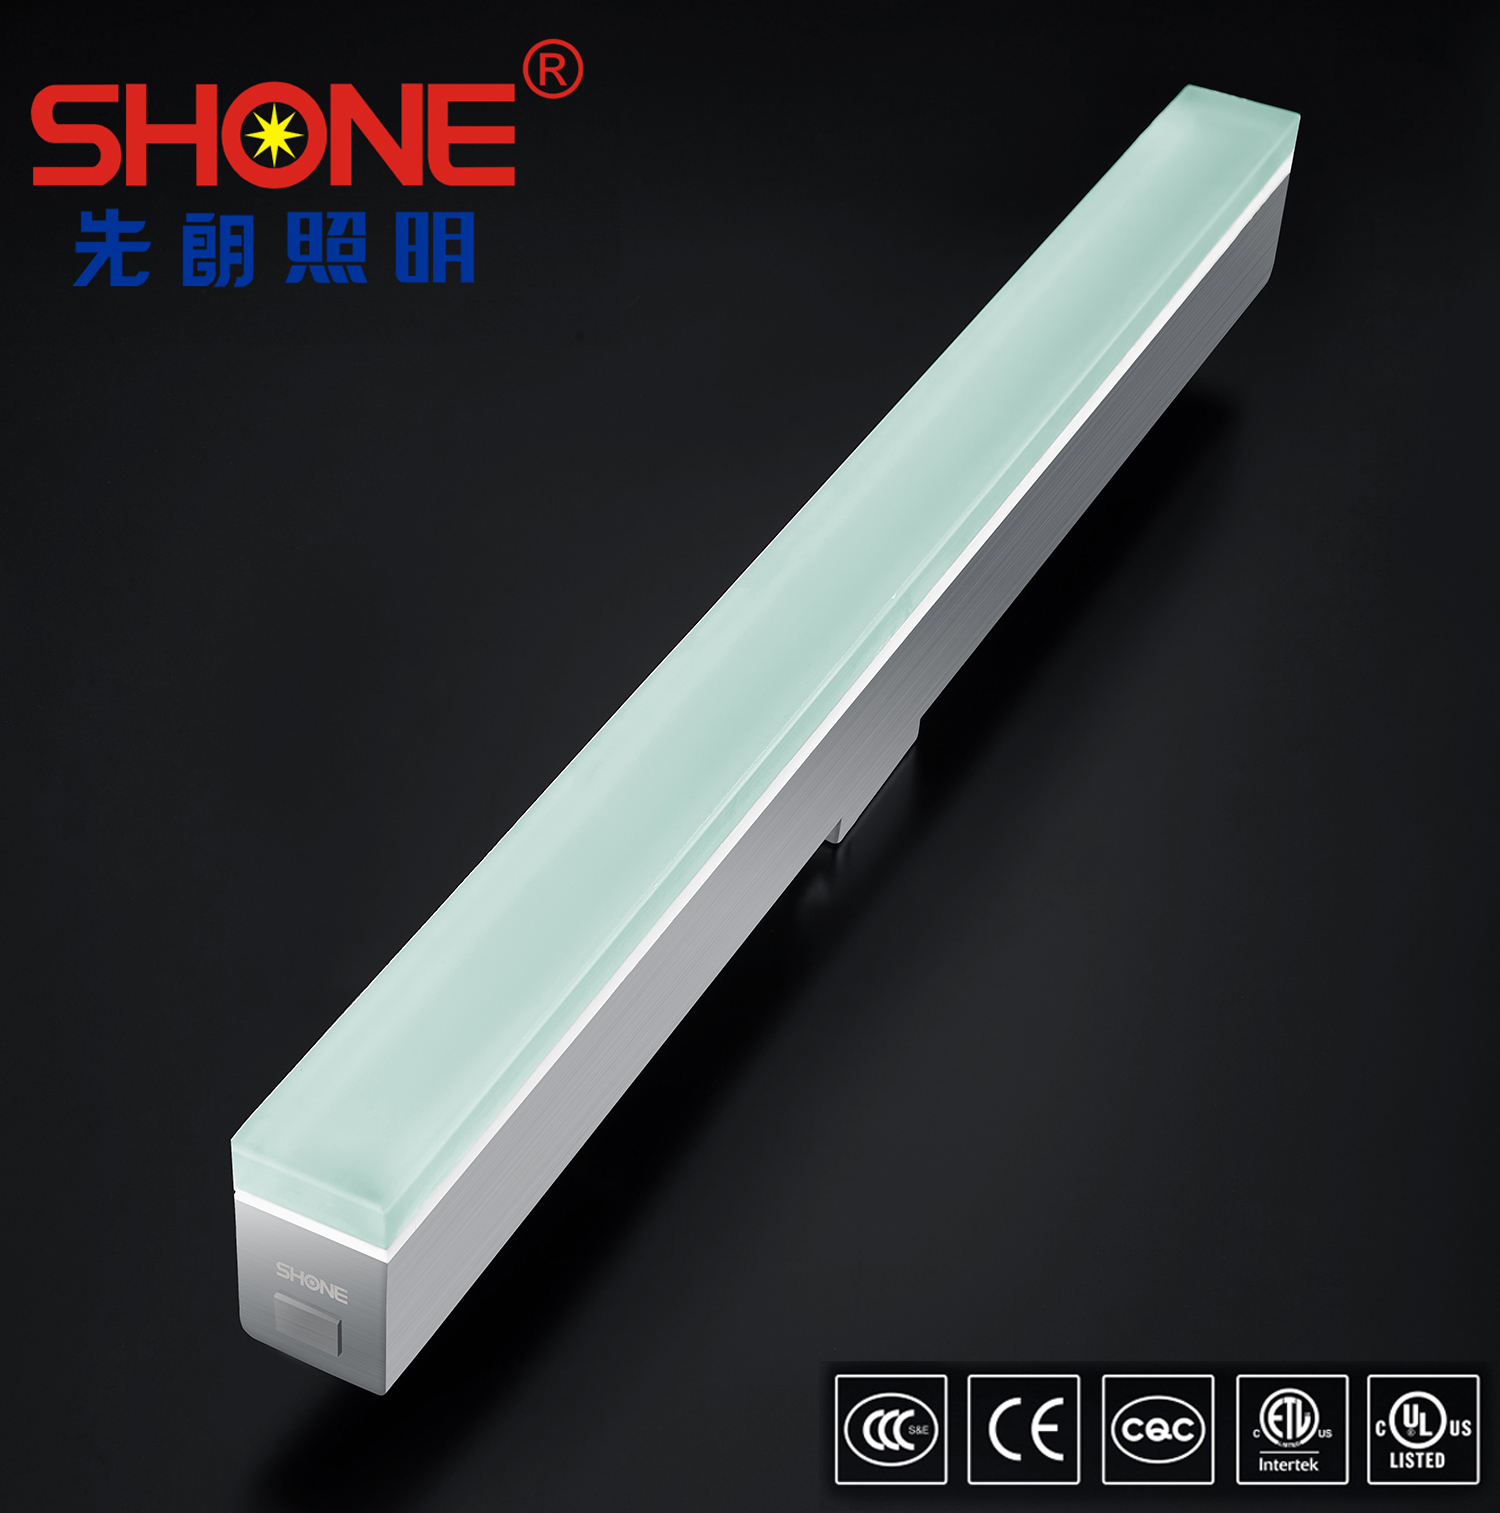 Shone Lighting Rectangular LED Brick LED Tile Light IP67 for Outdoor Lighting